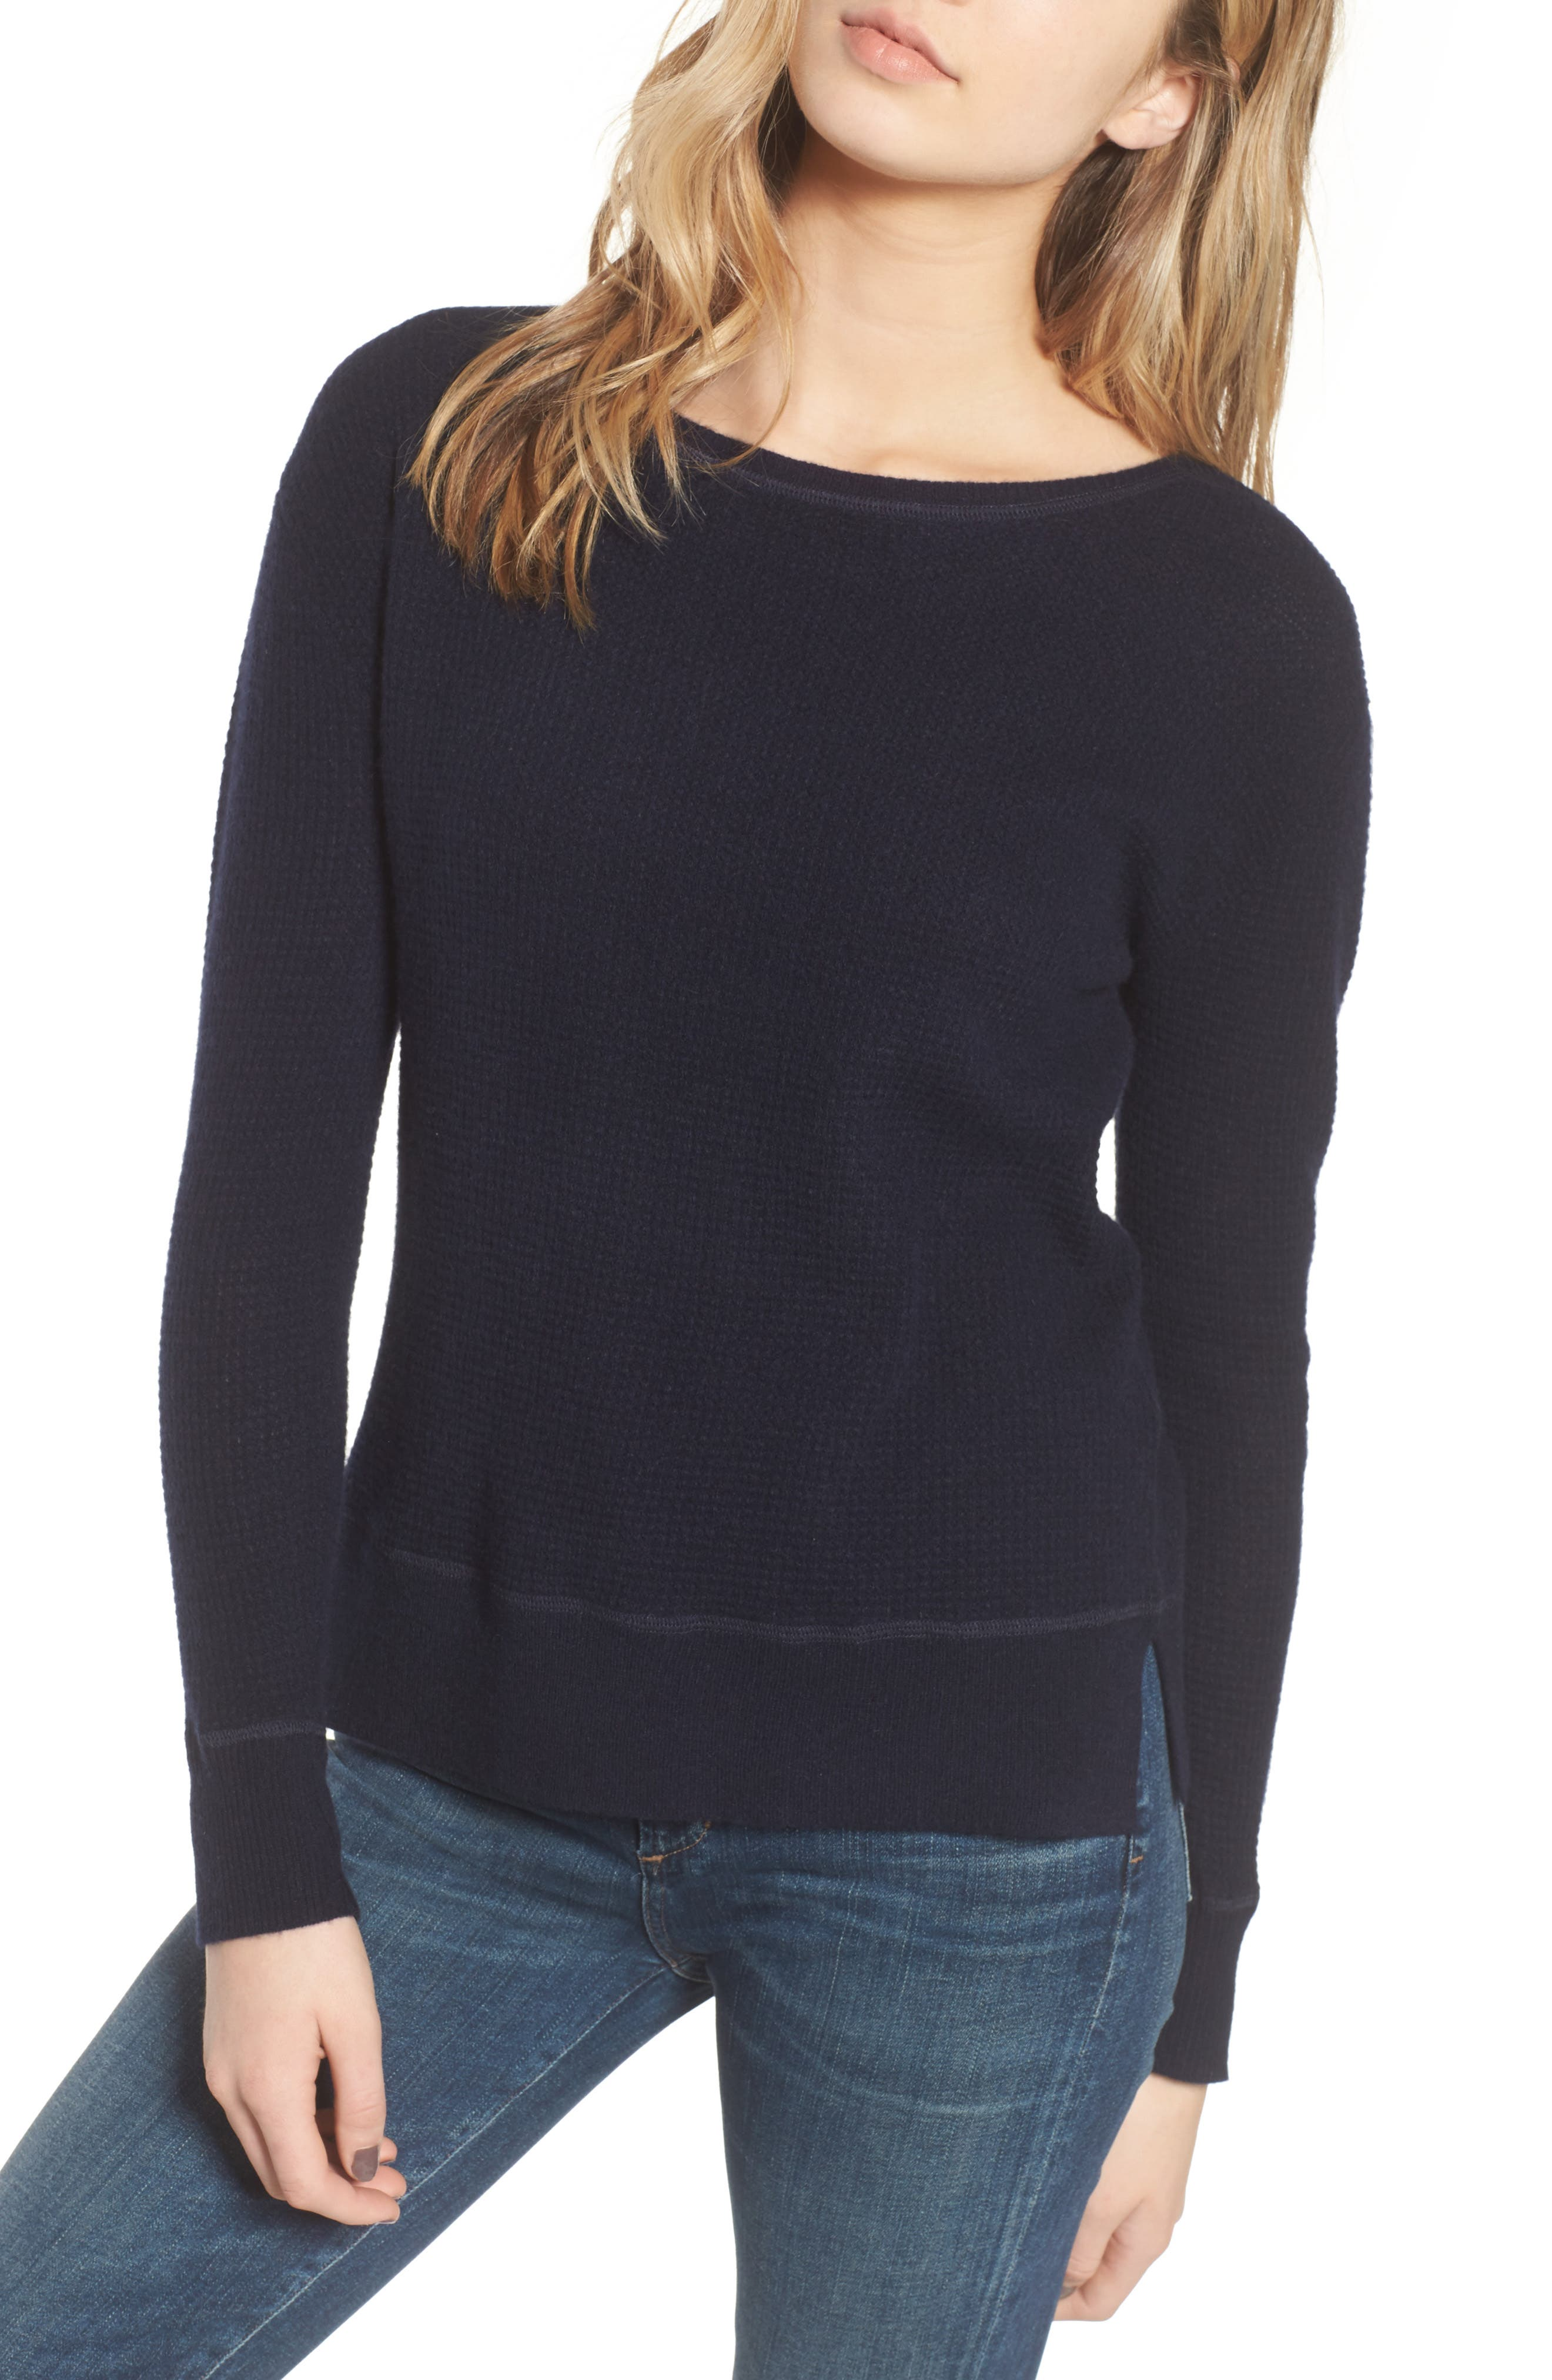 Main Image - James Perse Thermal Cashmere Top